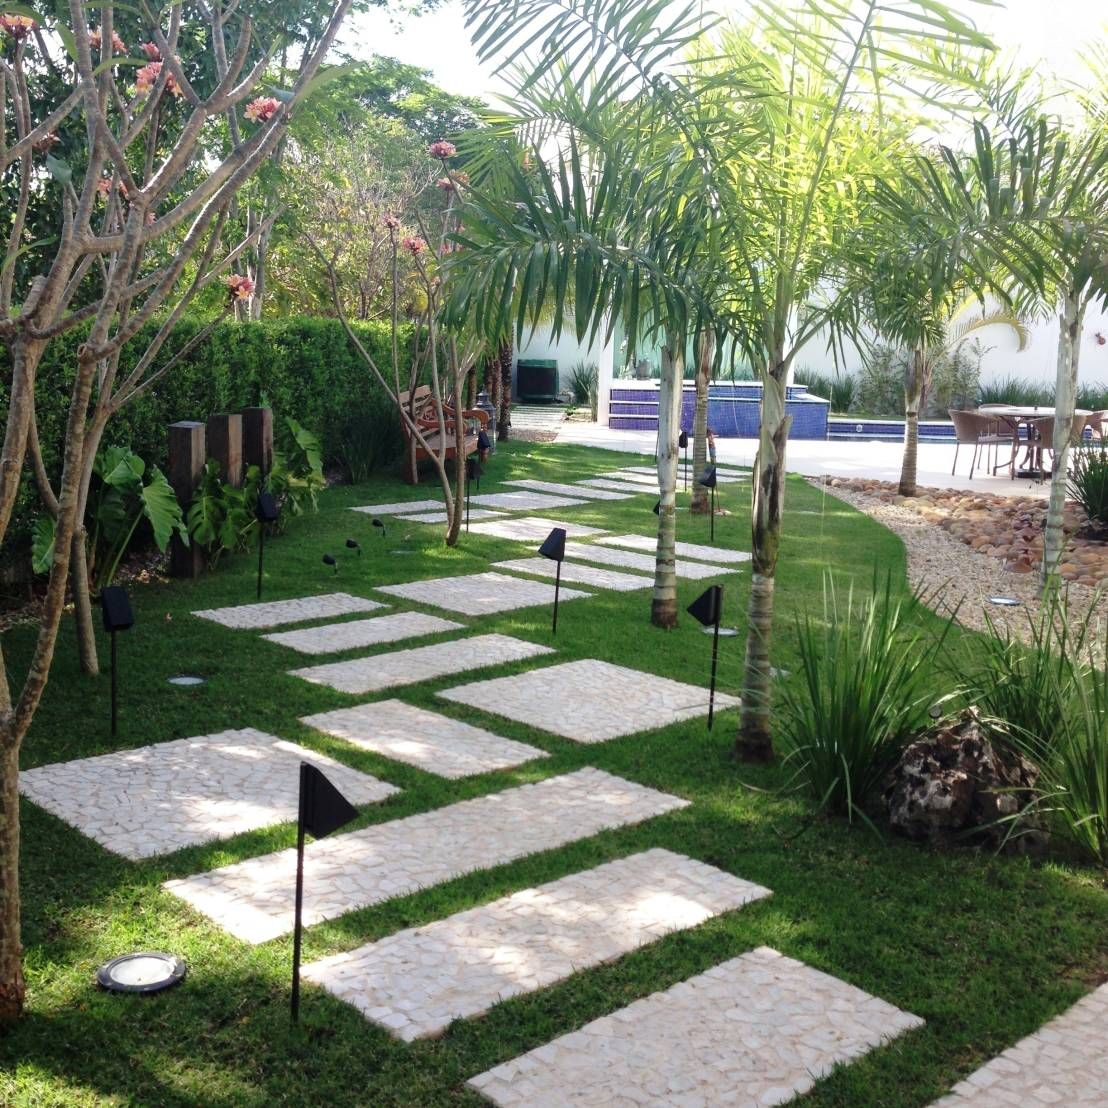 6 ideas para el jard n que nunca se te ocurrieron jardines pinterest jardins amenagement - Amenagement jardin tropical ...